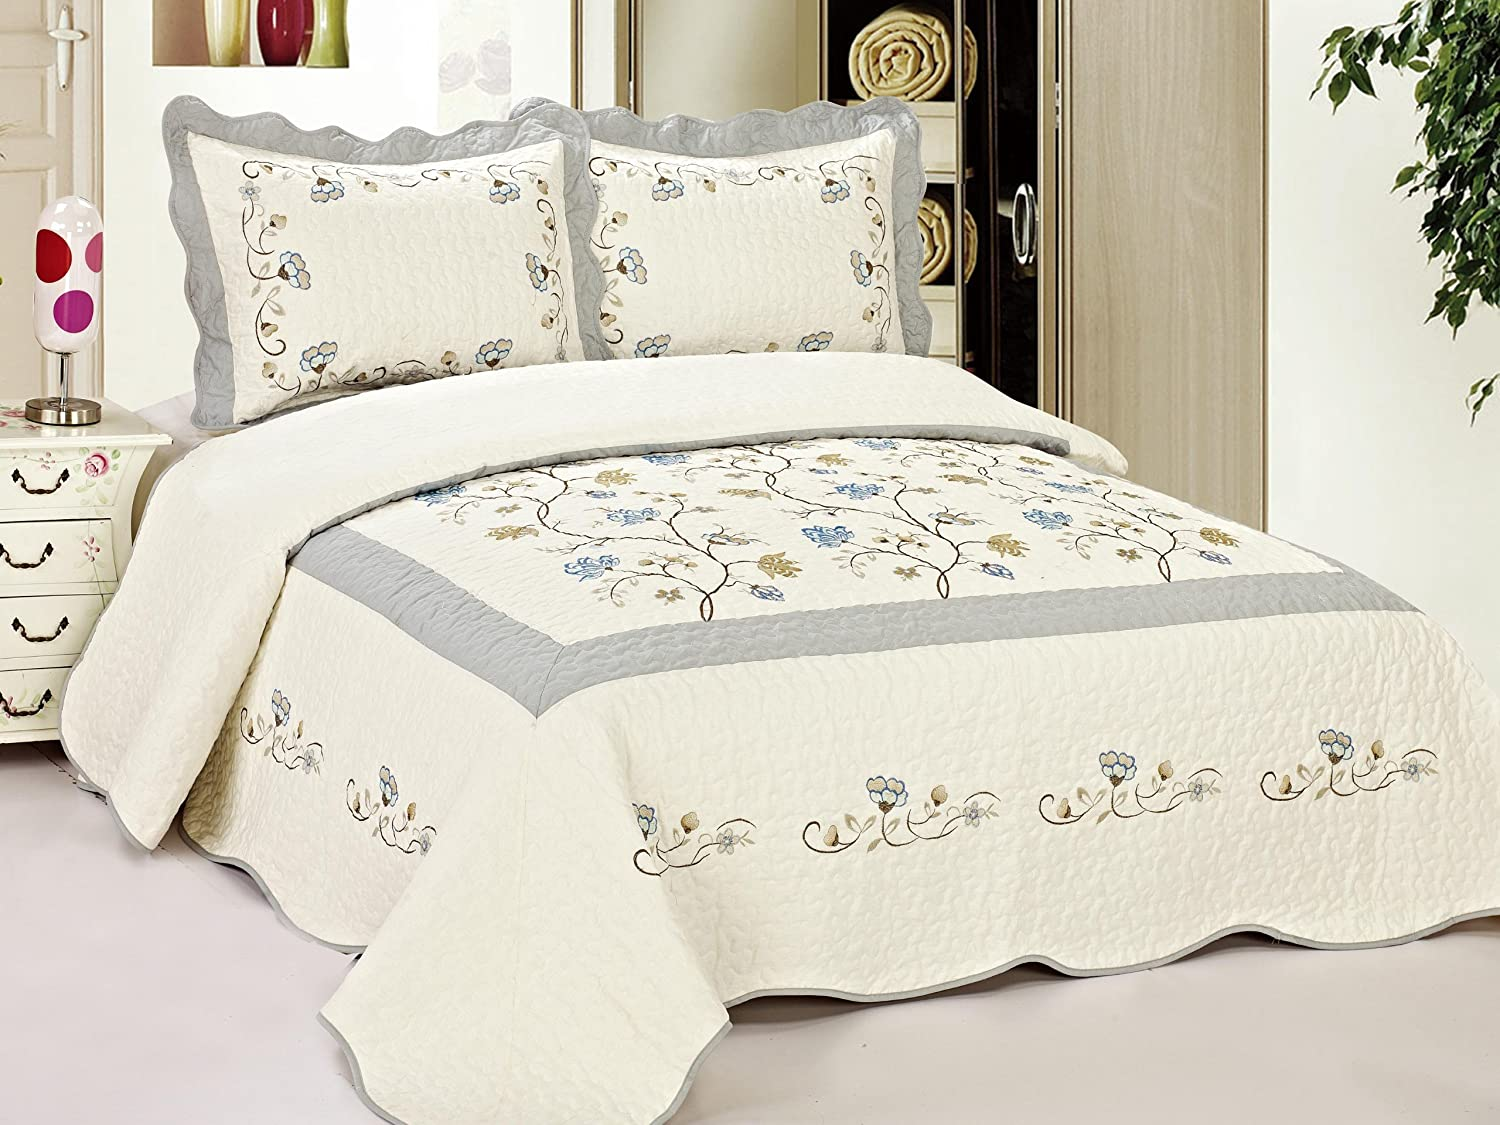 Amazon.com: King Size Quilted Bedspread Blue Flowers Floral 0046 ... : king size quilted bedspread - Adamdwight.com